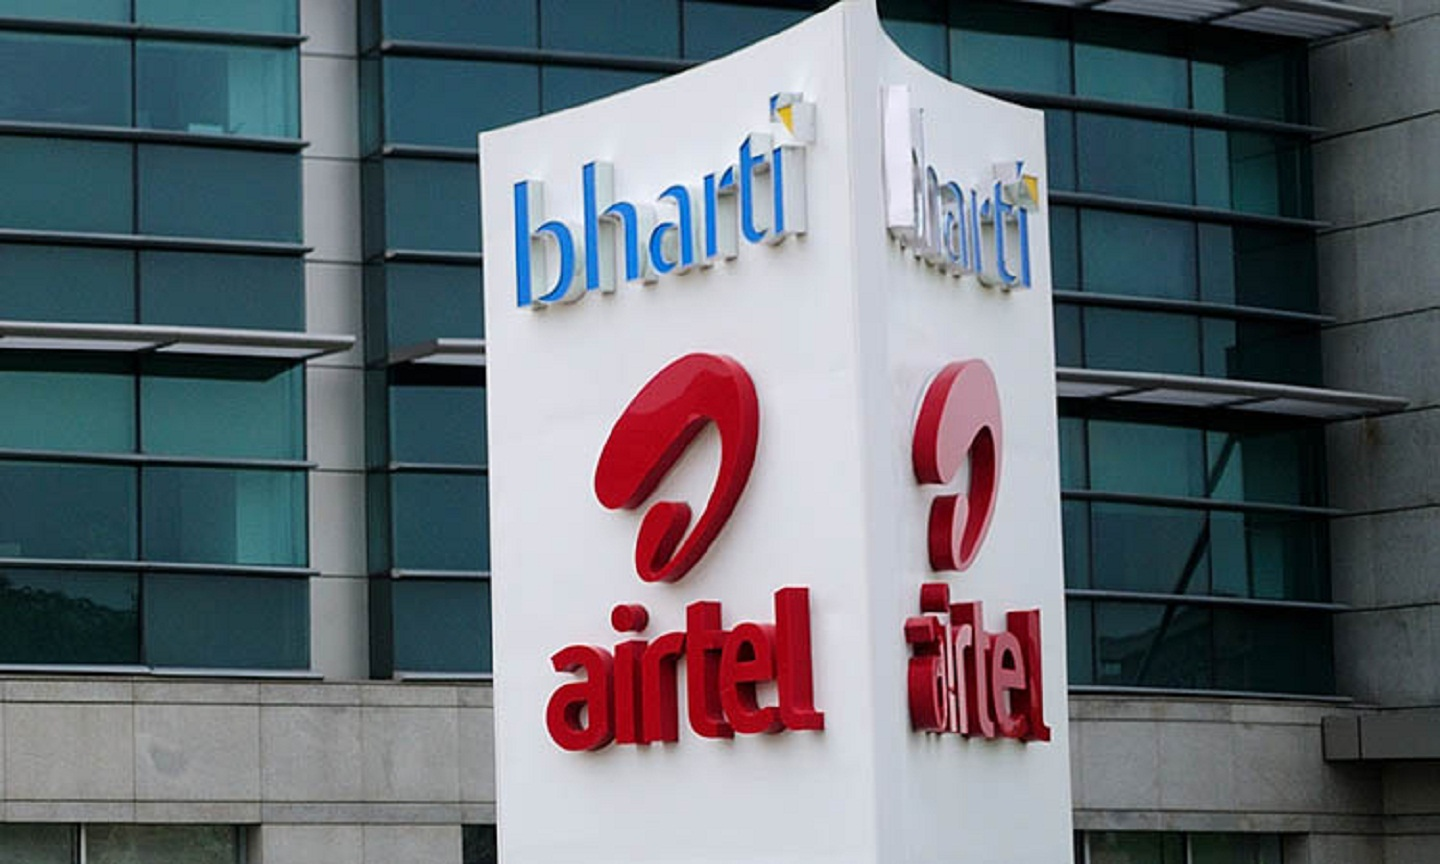 hr practices in bharti airtel Manual of practices fixed line and internet services airtel nodal officer, appellate address and practices for complaints bhopal bharti airtel ltd 1.